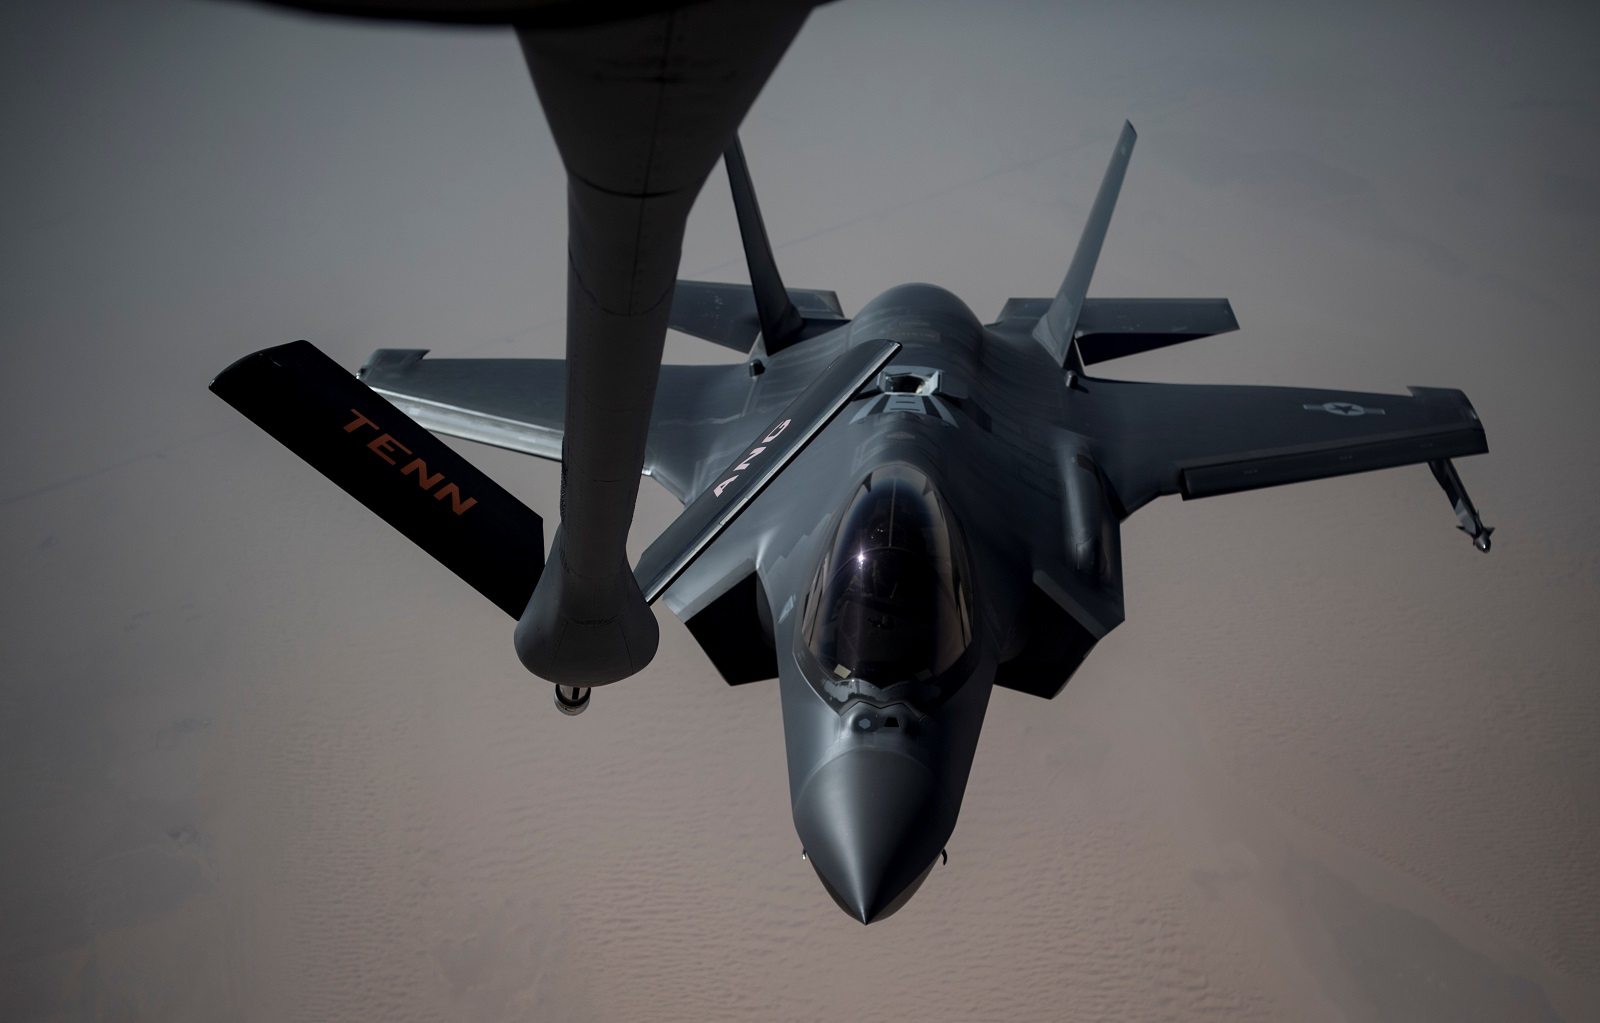 How the Stealth F-35A Just Surpassed the F-22A In One Key Metric